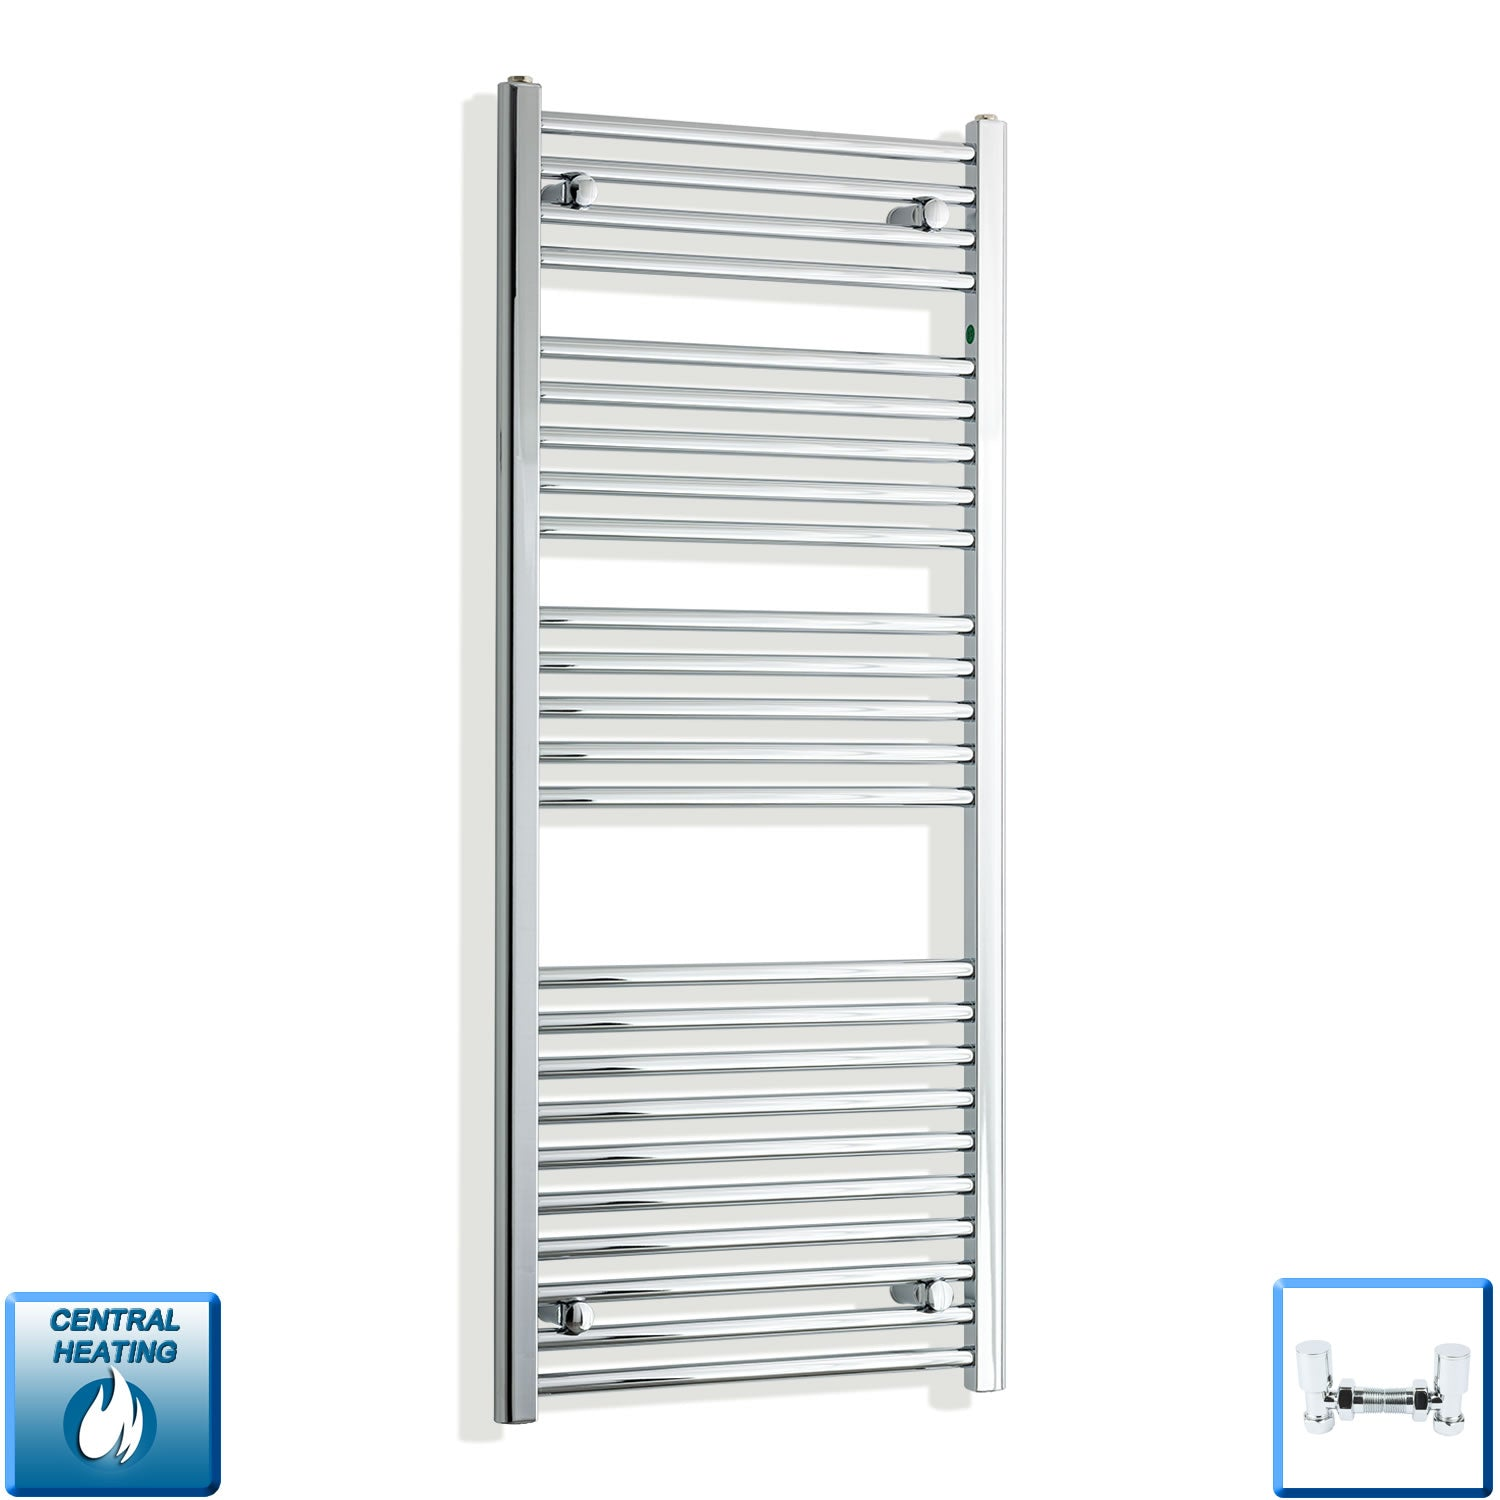 550mm Wide 1300mm High Chrome Towel Rail Radiator With Angled Valve